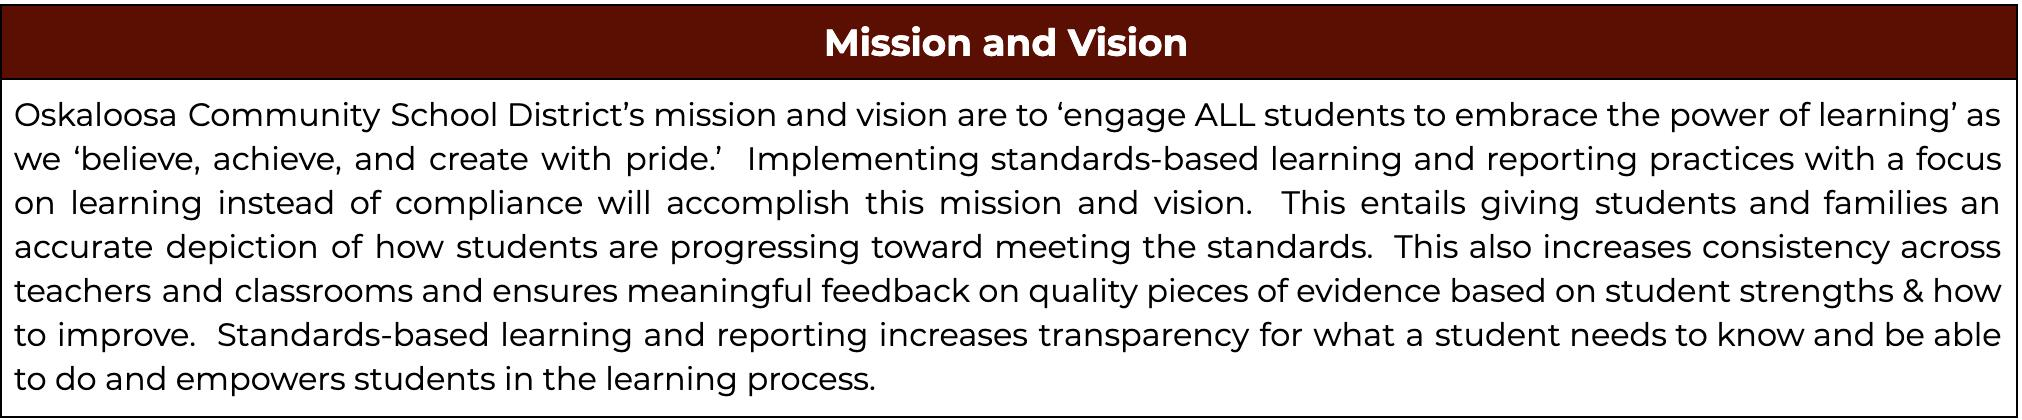 District Mission and Vision Connects to Standards-Based Learning and Reporting